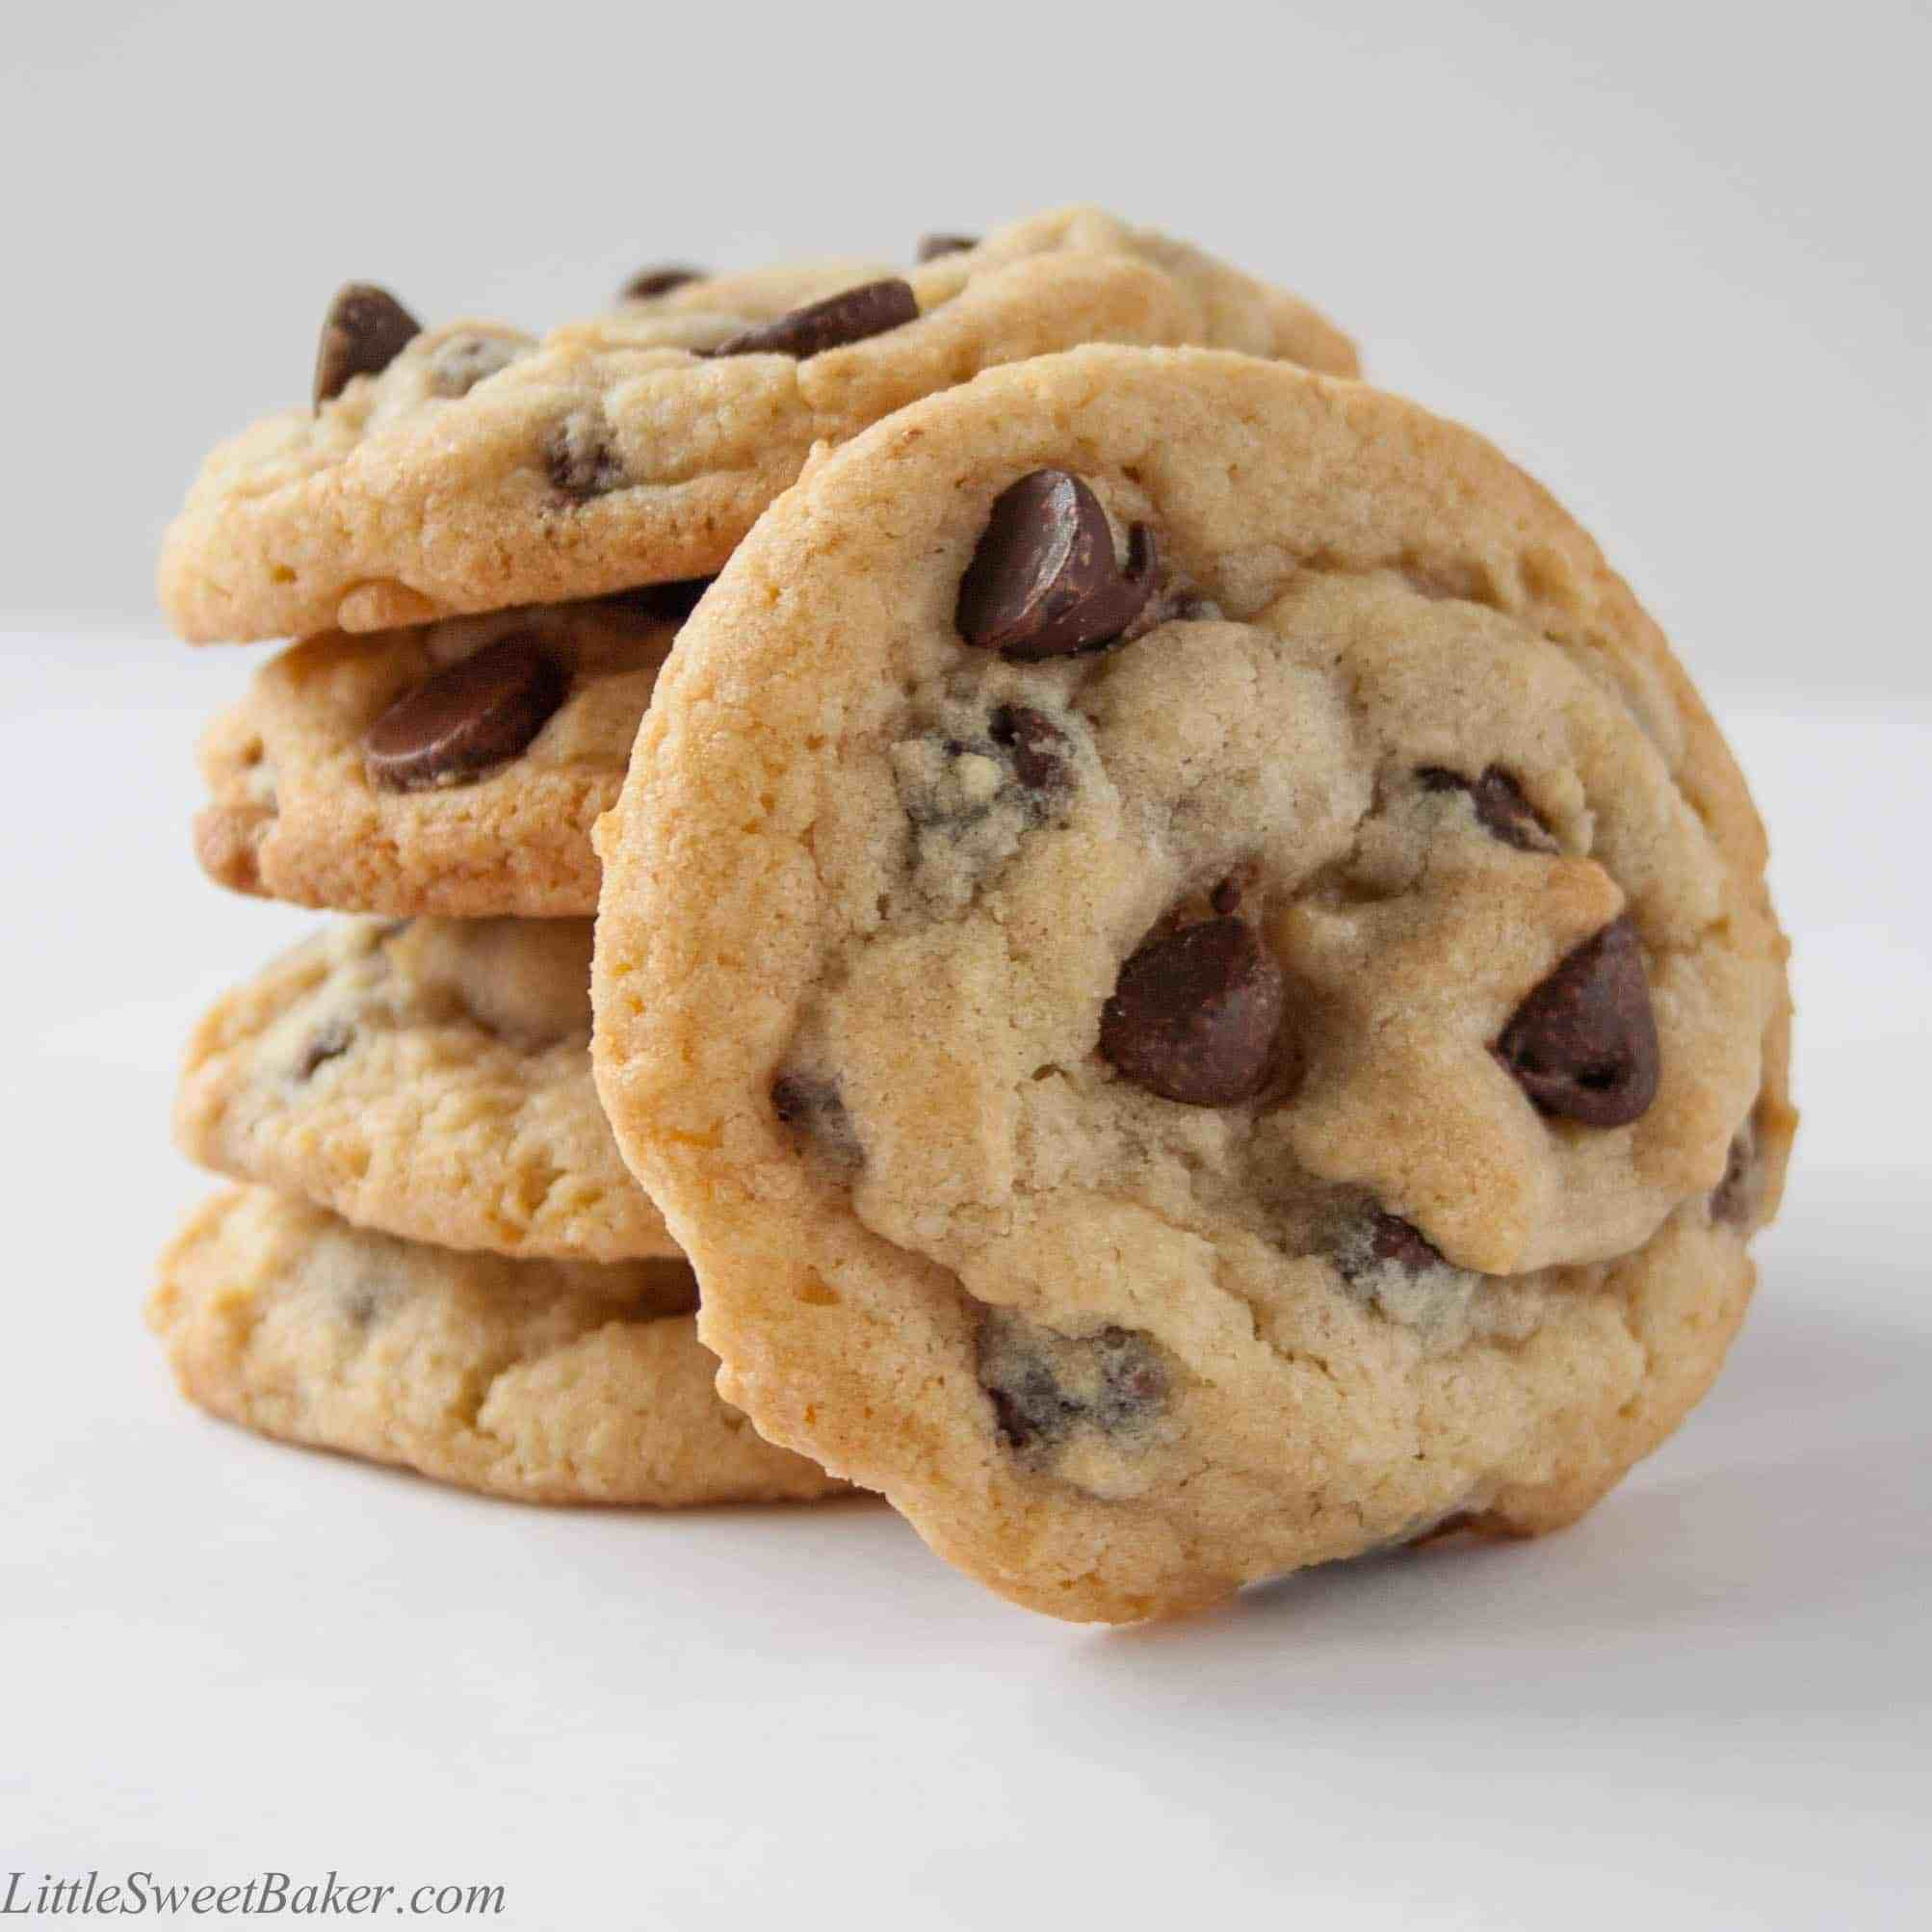 Chocolate Chip Cookies Allrecipes  Best Chocolate Chip Cookies Little Sweet Baker